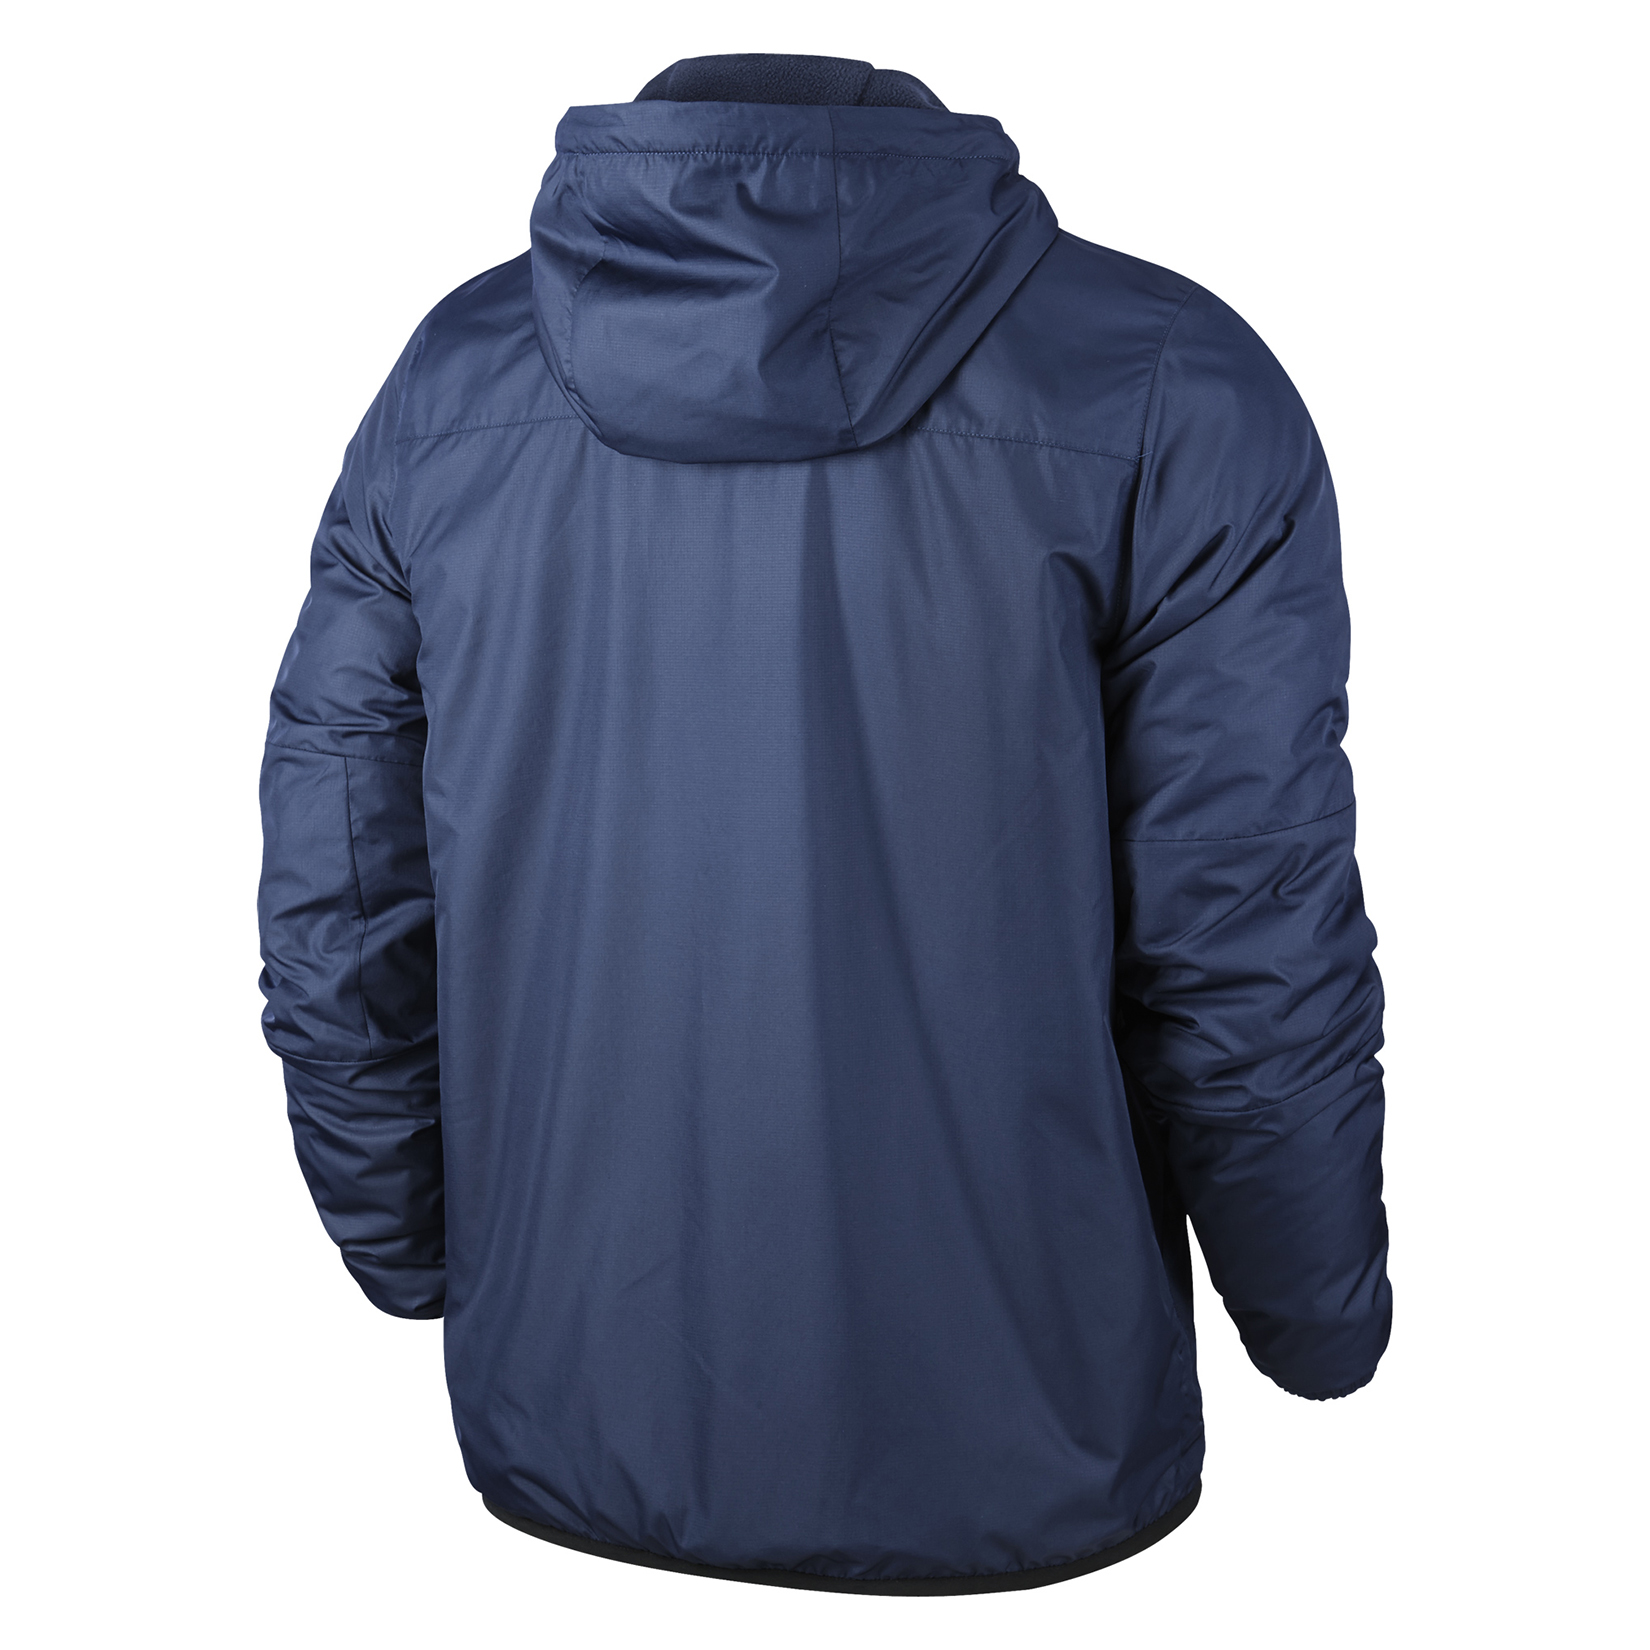 Nike Team Fall Fleece Lined Jacket Obsidian-Dark Obsidian-White